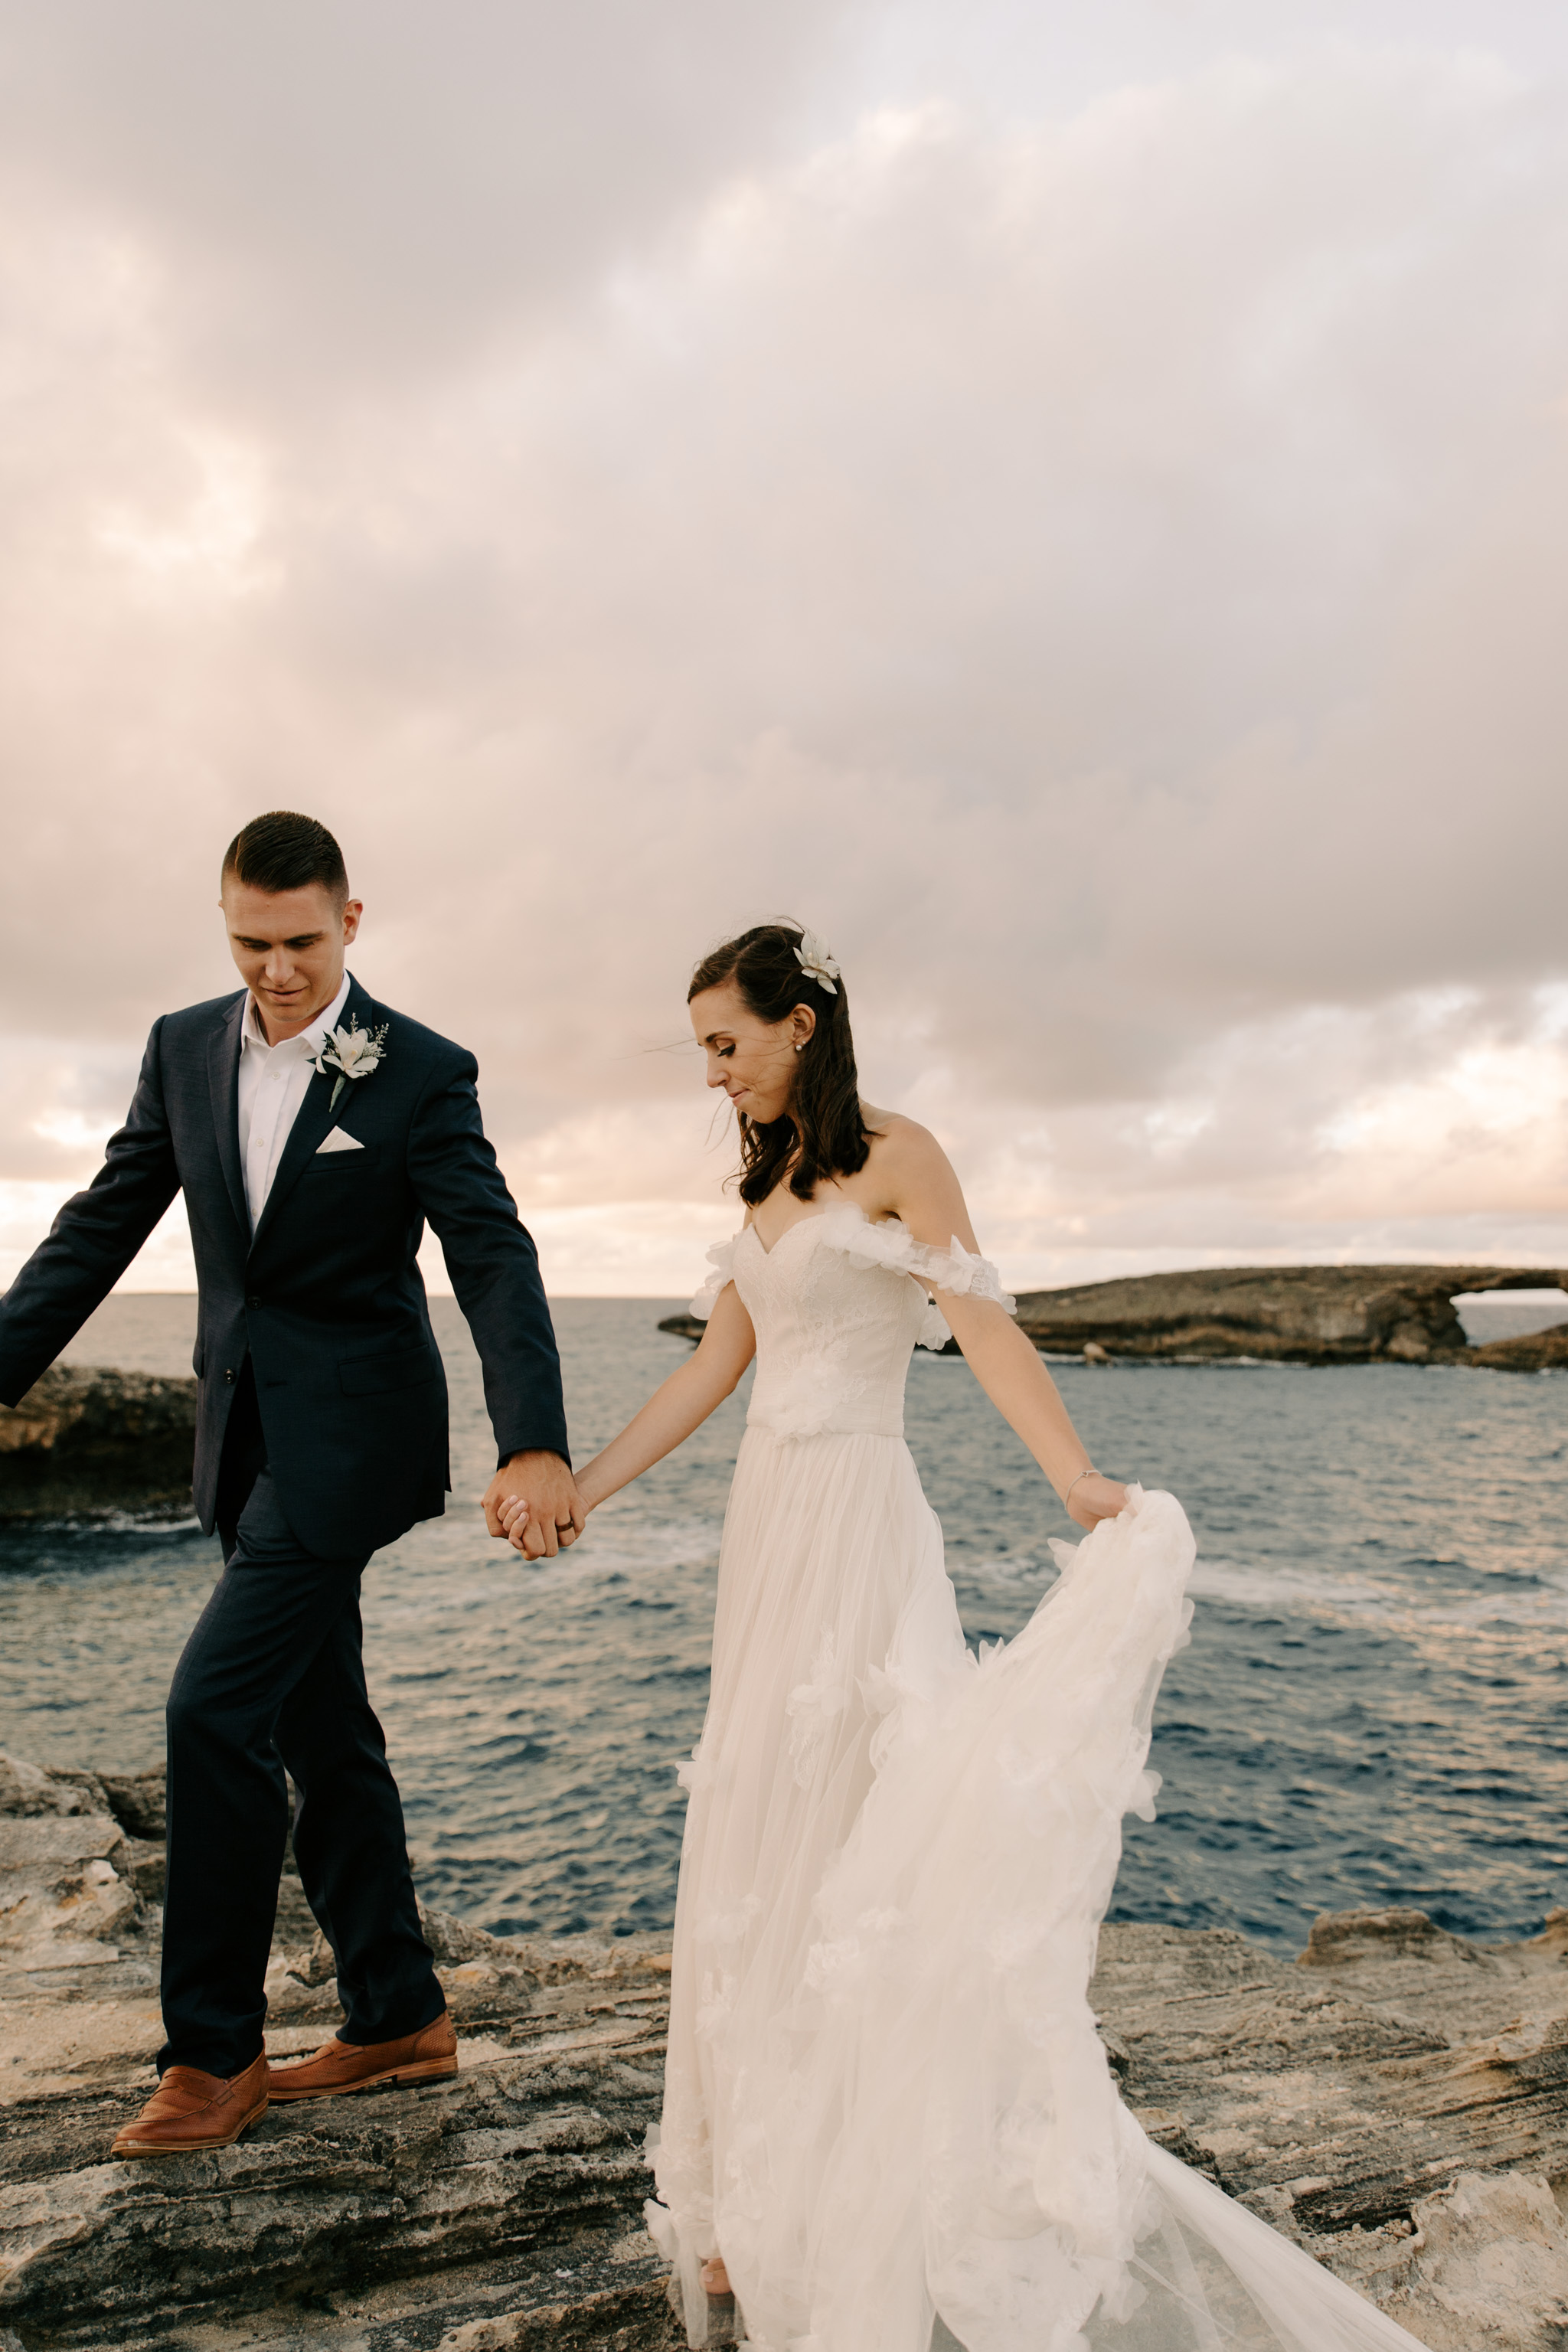 Laie Point Backyard Wedding By Hawaii Wedding Photographer Desiree Leilani (1 of 1)-50.jpg